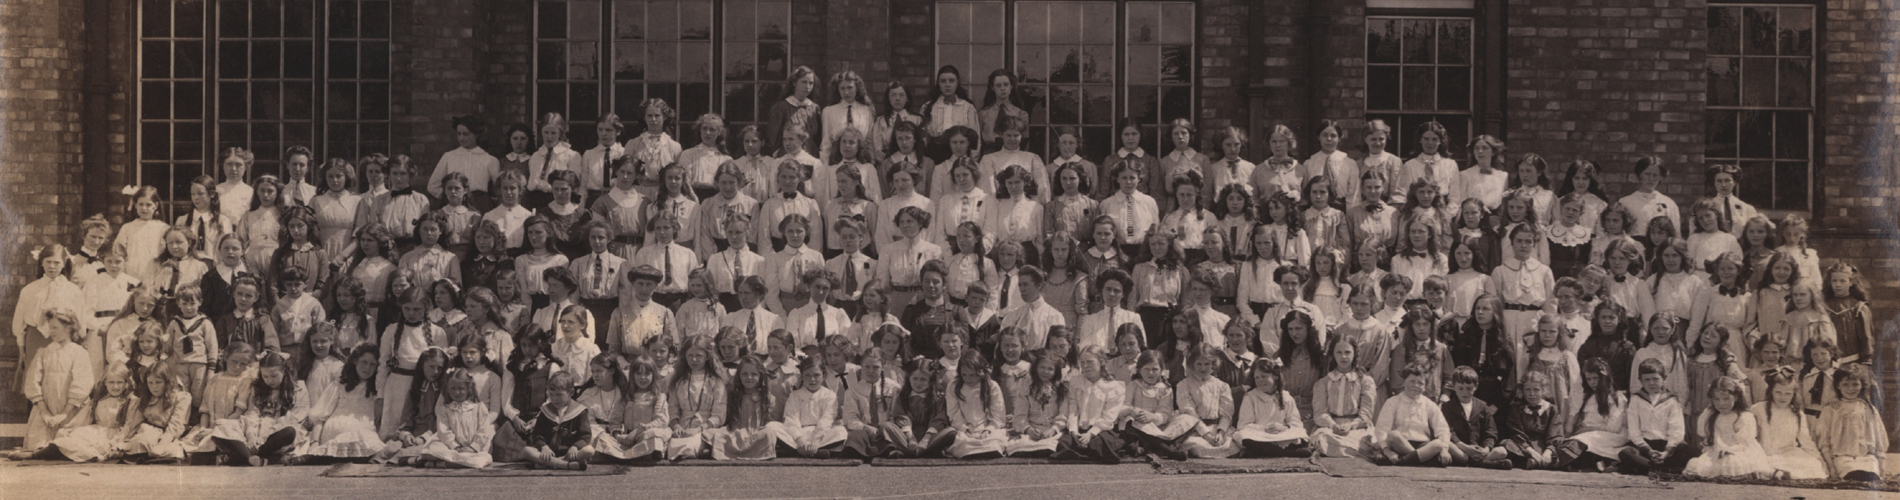 1911 Staff and Scholars